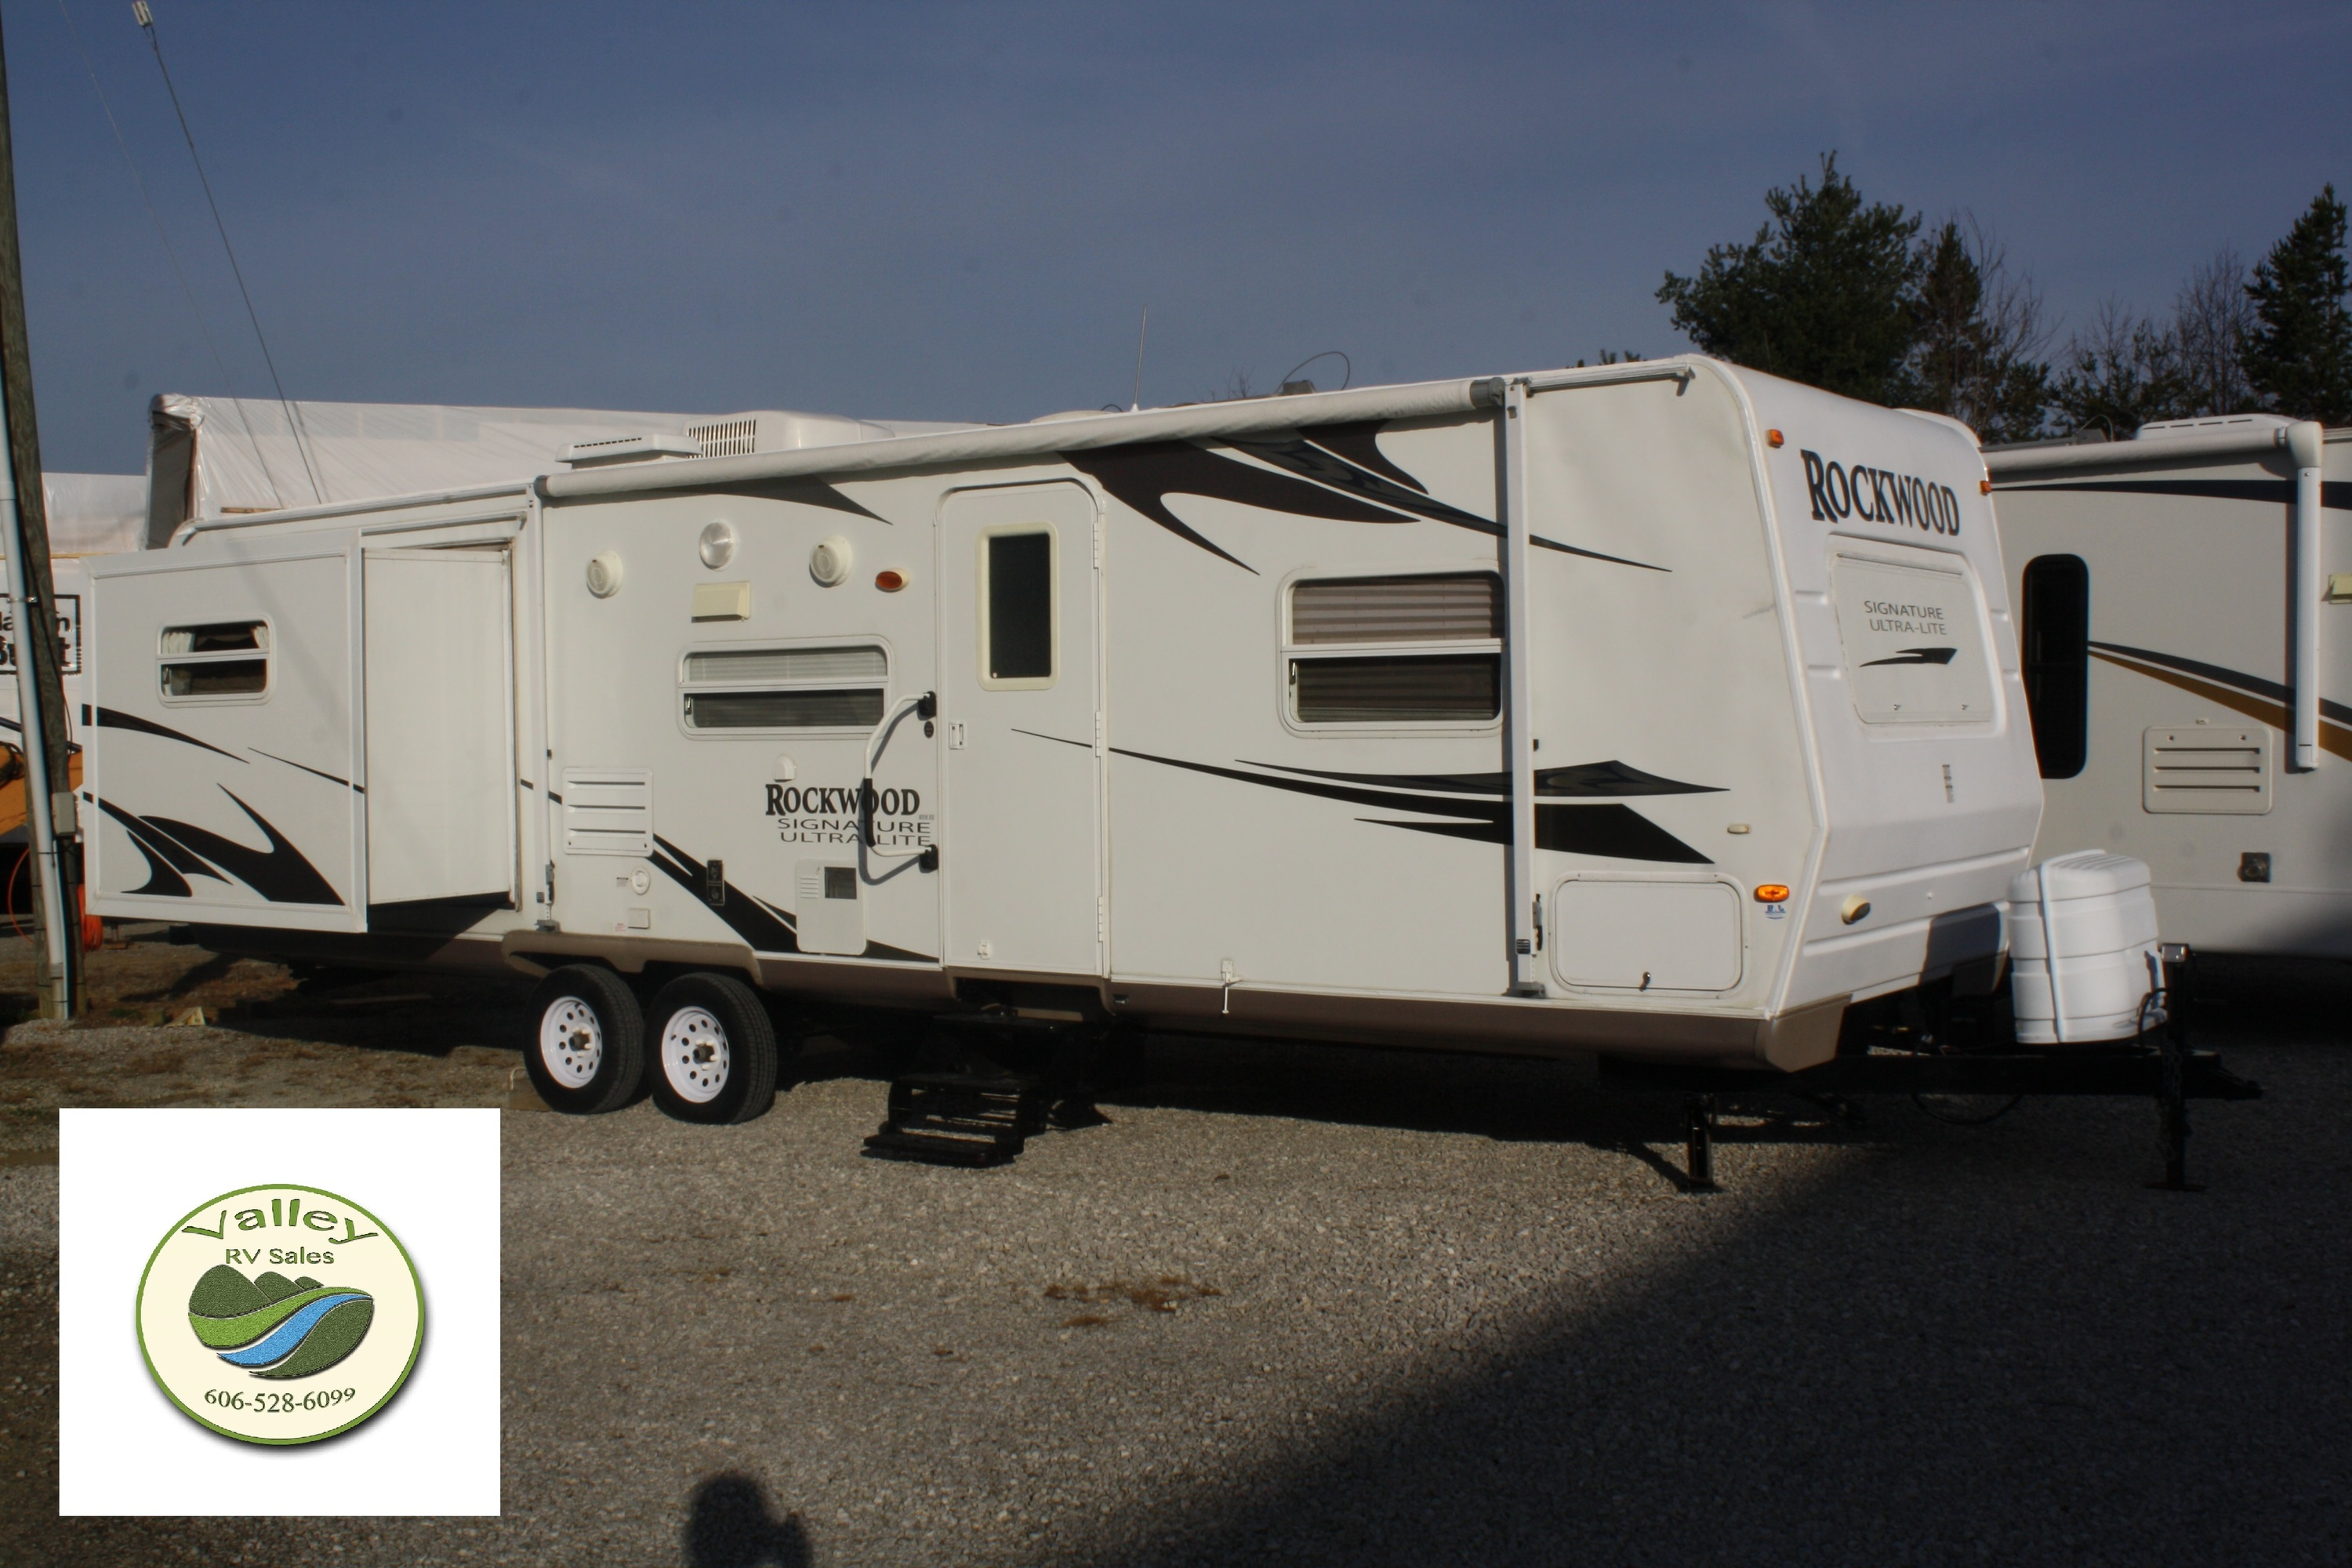 Valley RV Sales - Corbin, KY - Offering New & Used RVs from